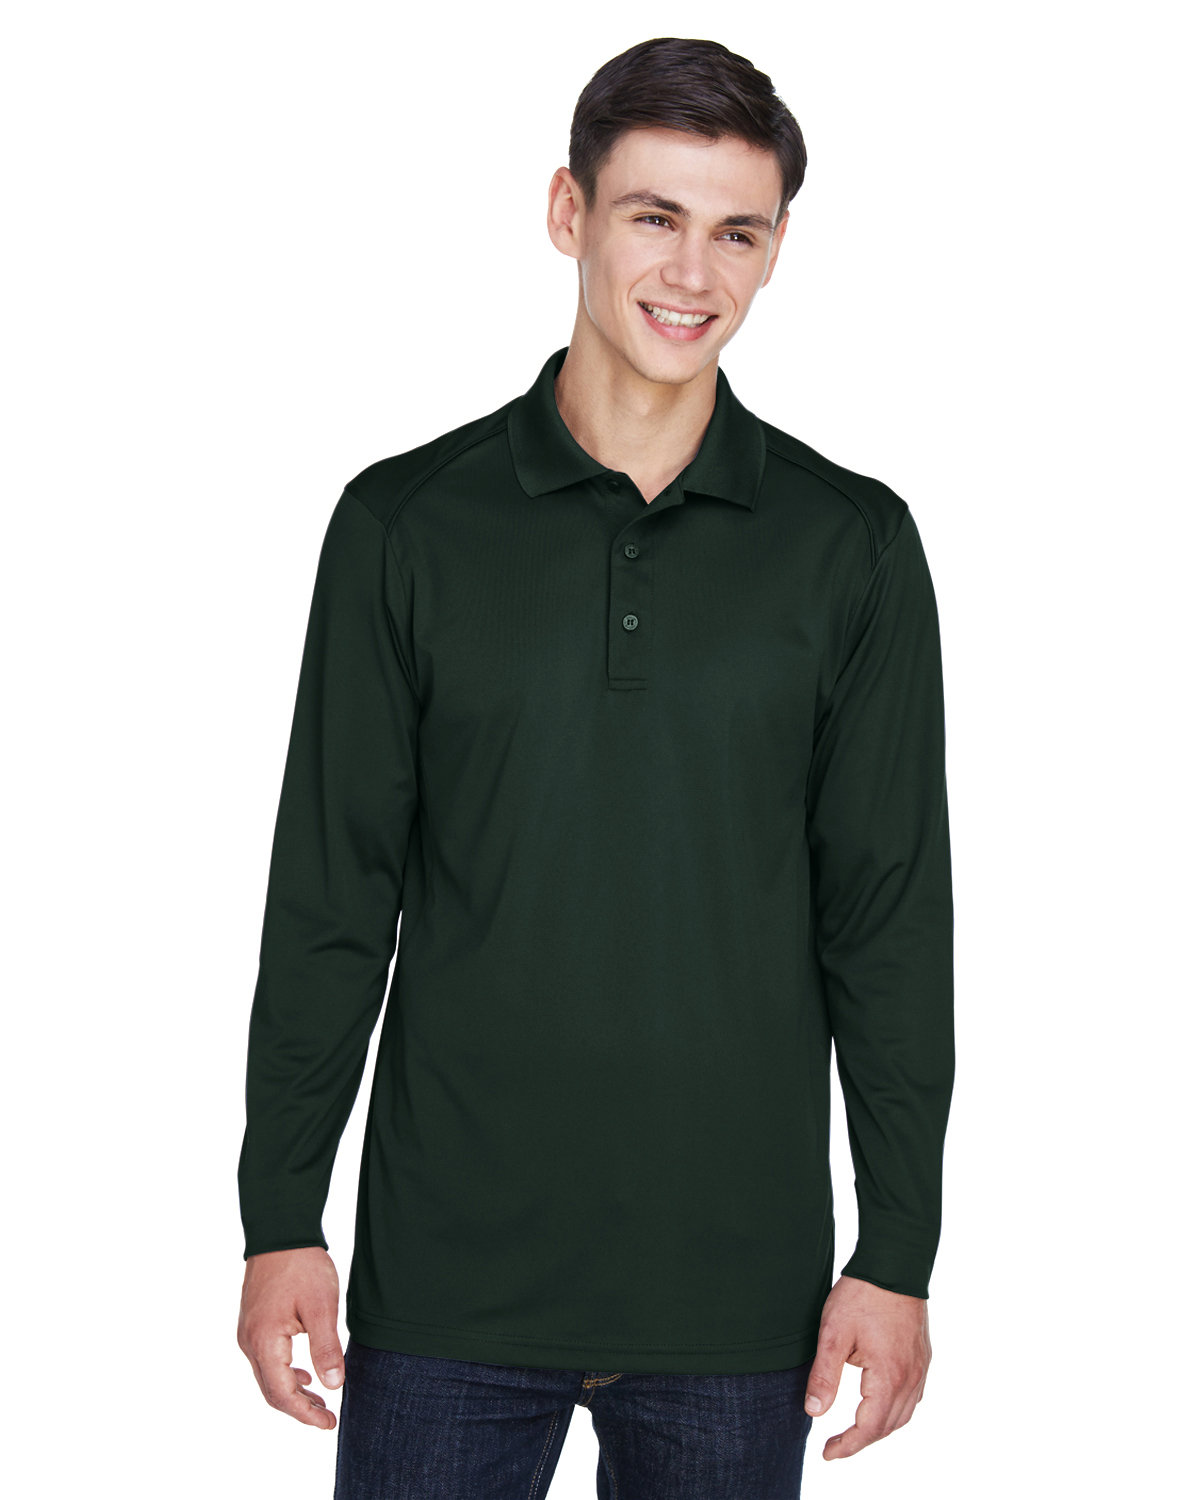 Extreme Men's Eperformance™ Snag Protection Long-Sleeve Polo FOREST